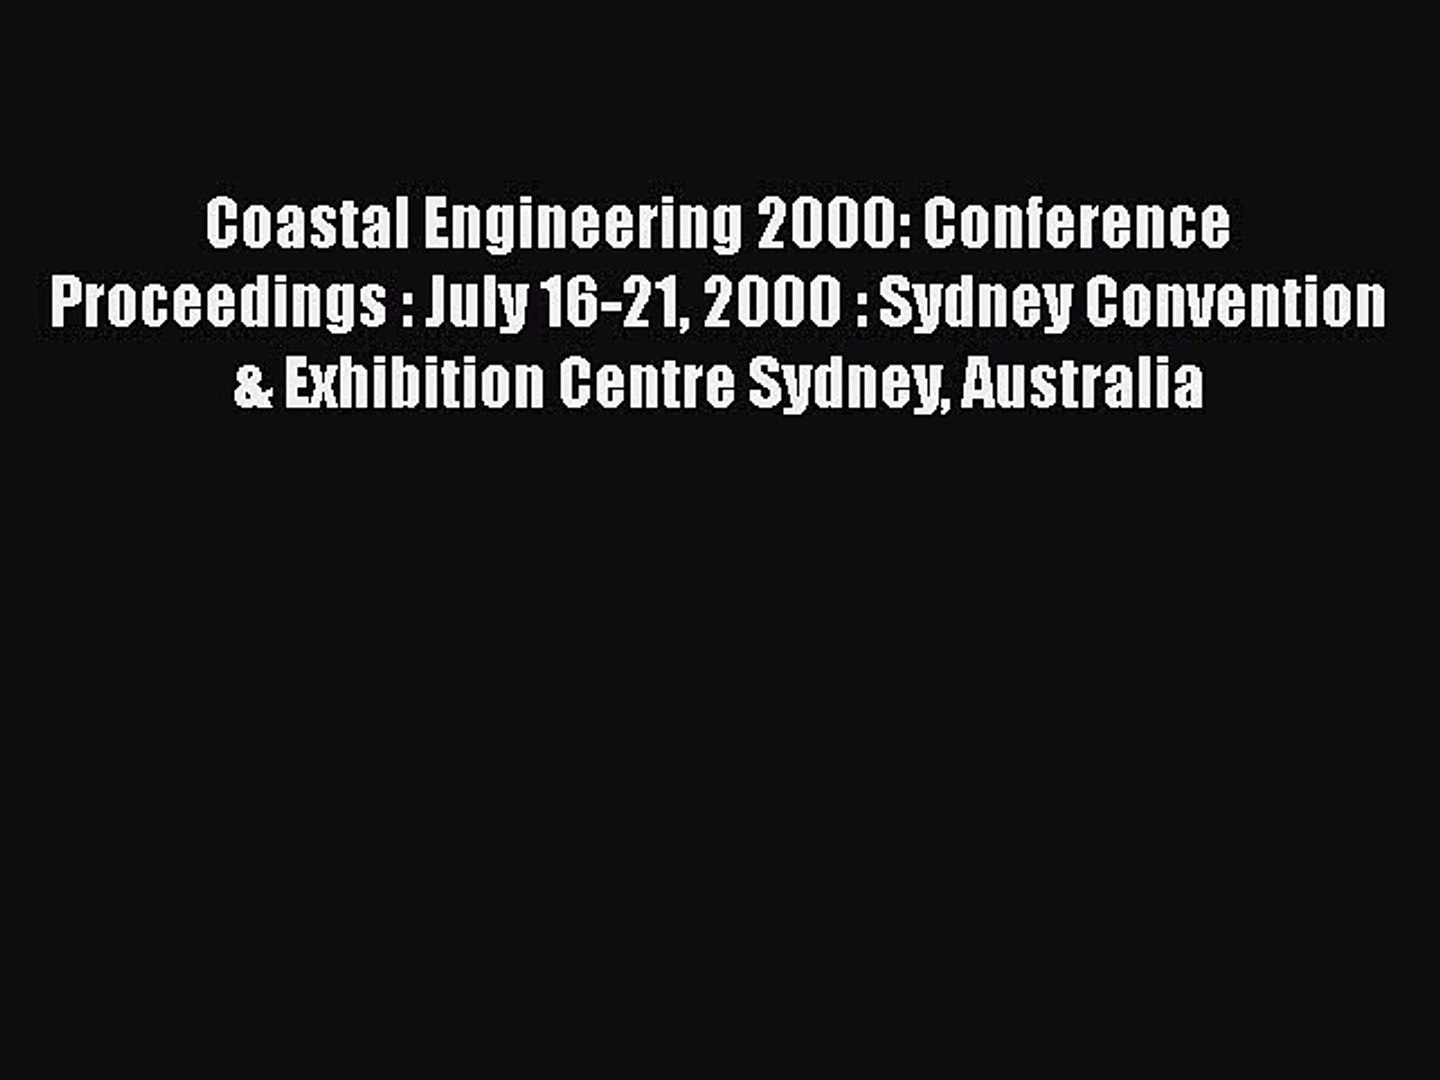 Read Coastal Engineering 2000: Conference Proceedings : July 16-21 2000 : Sydney Convention